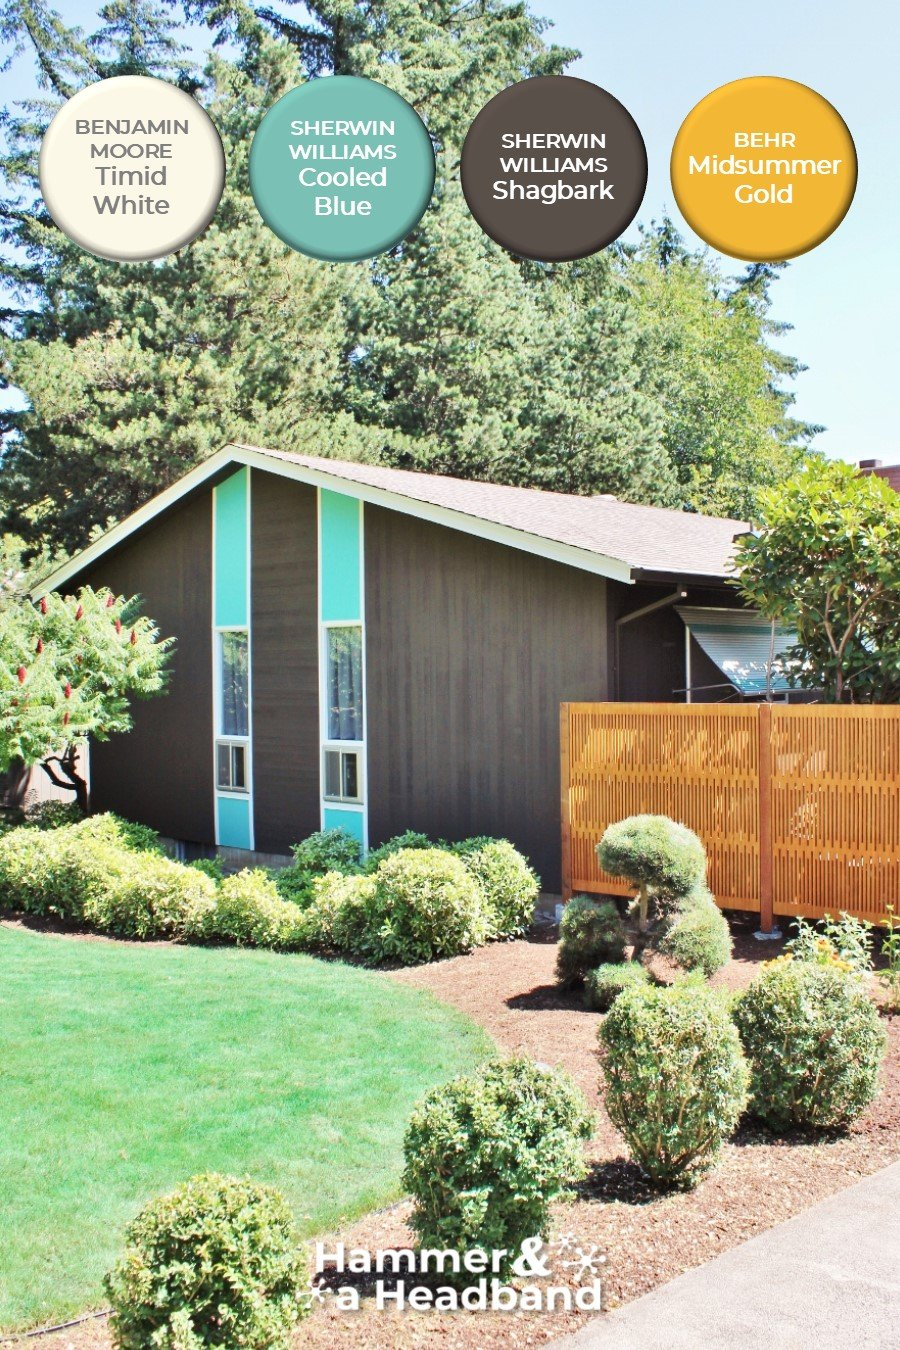 8 Mid Century Modern Paint Color Palettes To Inspire Your Home Makeover